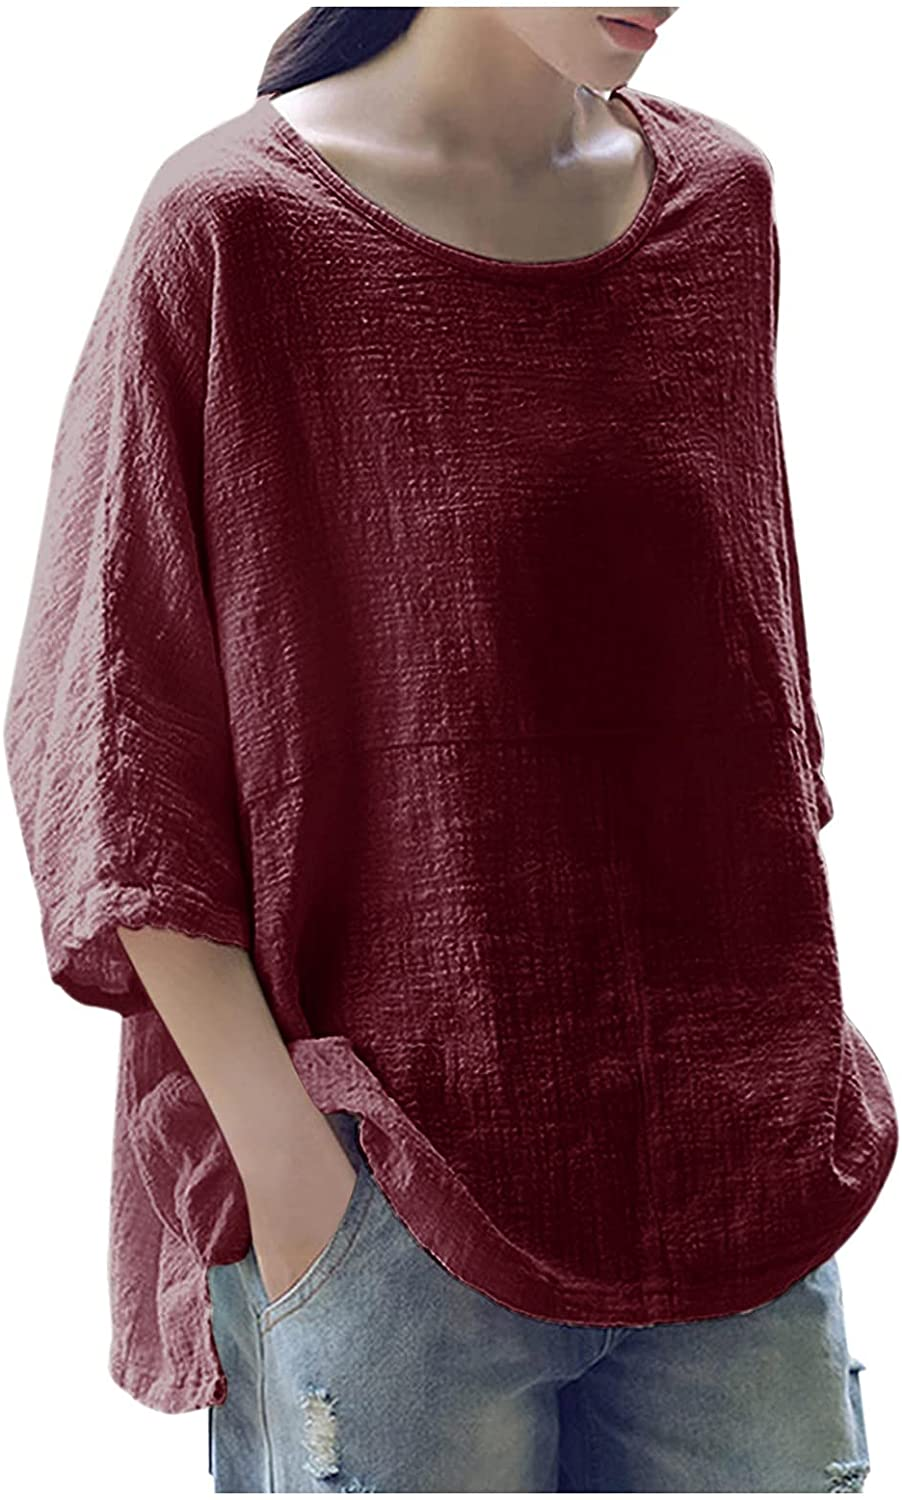 Aukbays Women's Short Sleeve Cotton Linen Shirt Solid Tops Casual Summer Boatneck Tee Shirts Comfy Plus Size Blouses